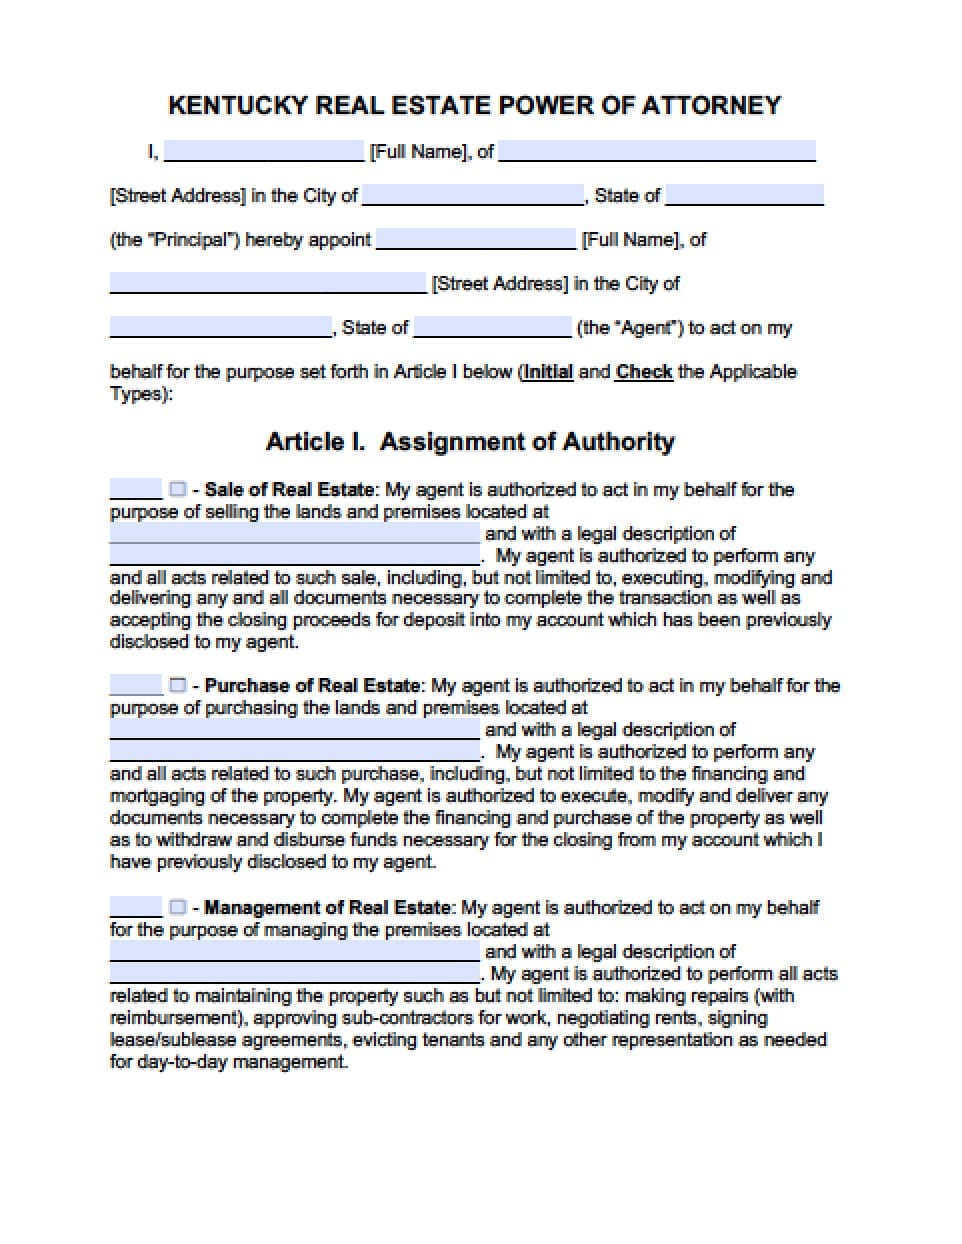 power of attorney form ky  Kentucky Real Estate ONLY Power of Attorney Form - Power of ...